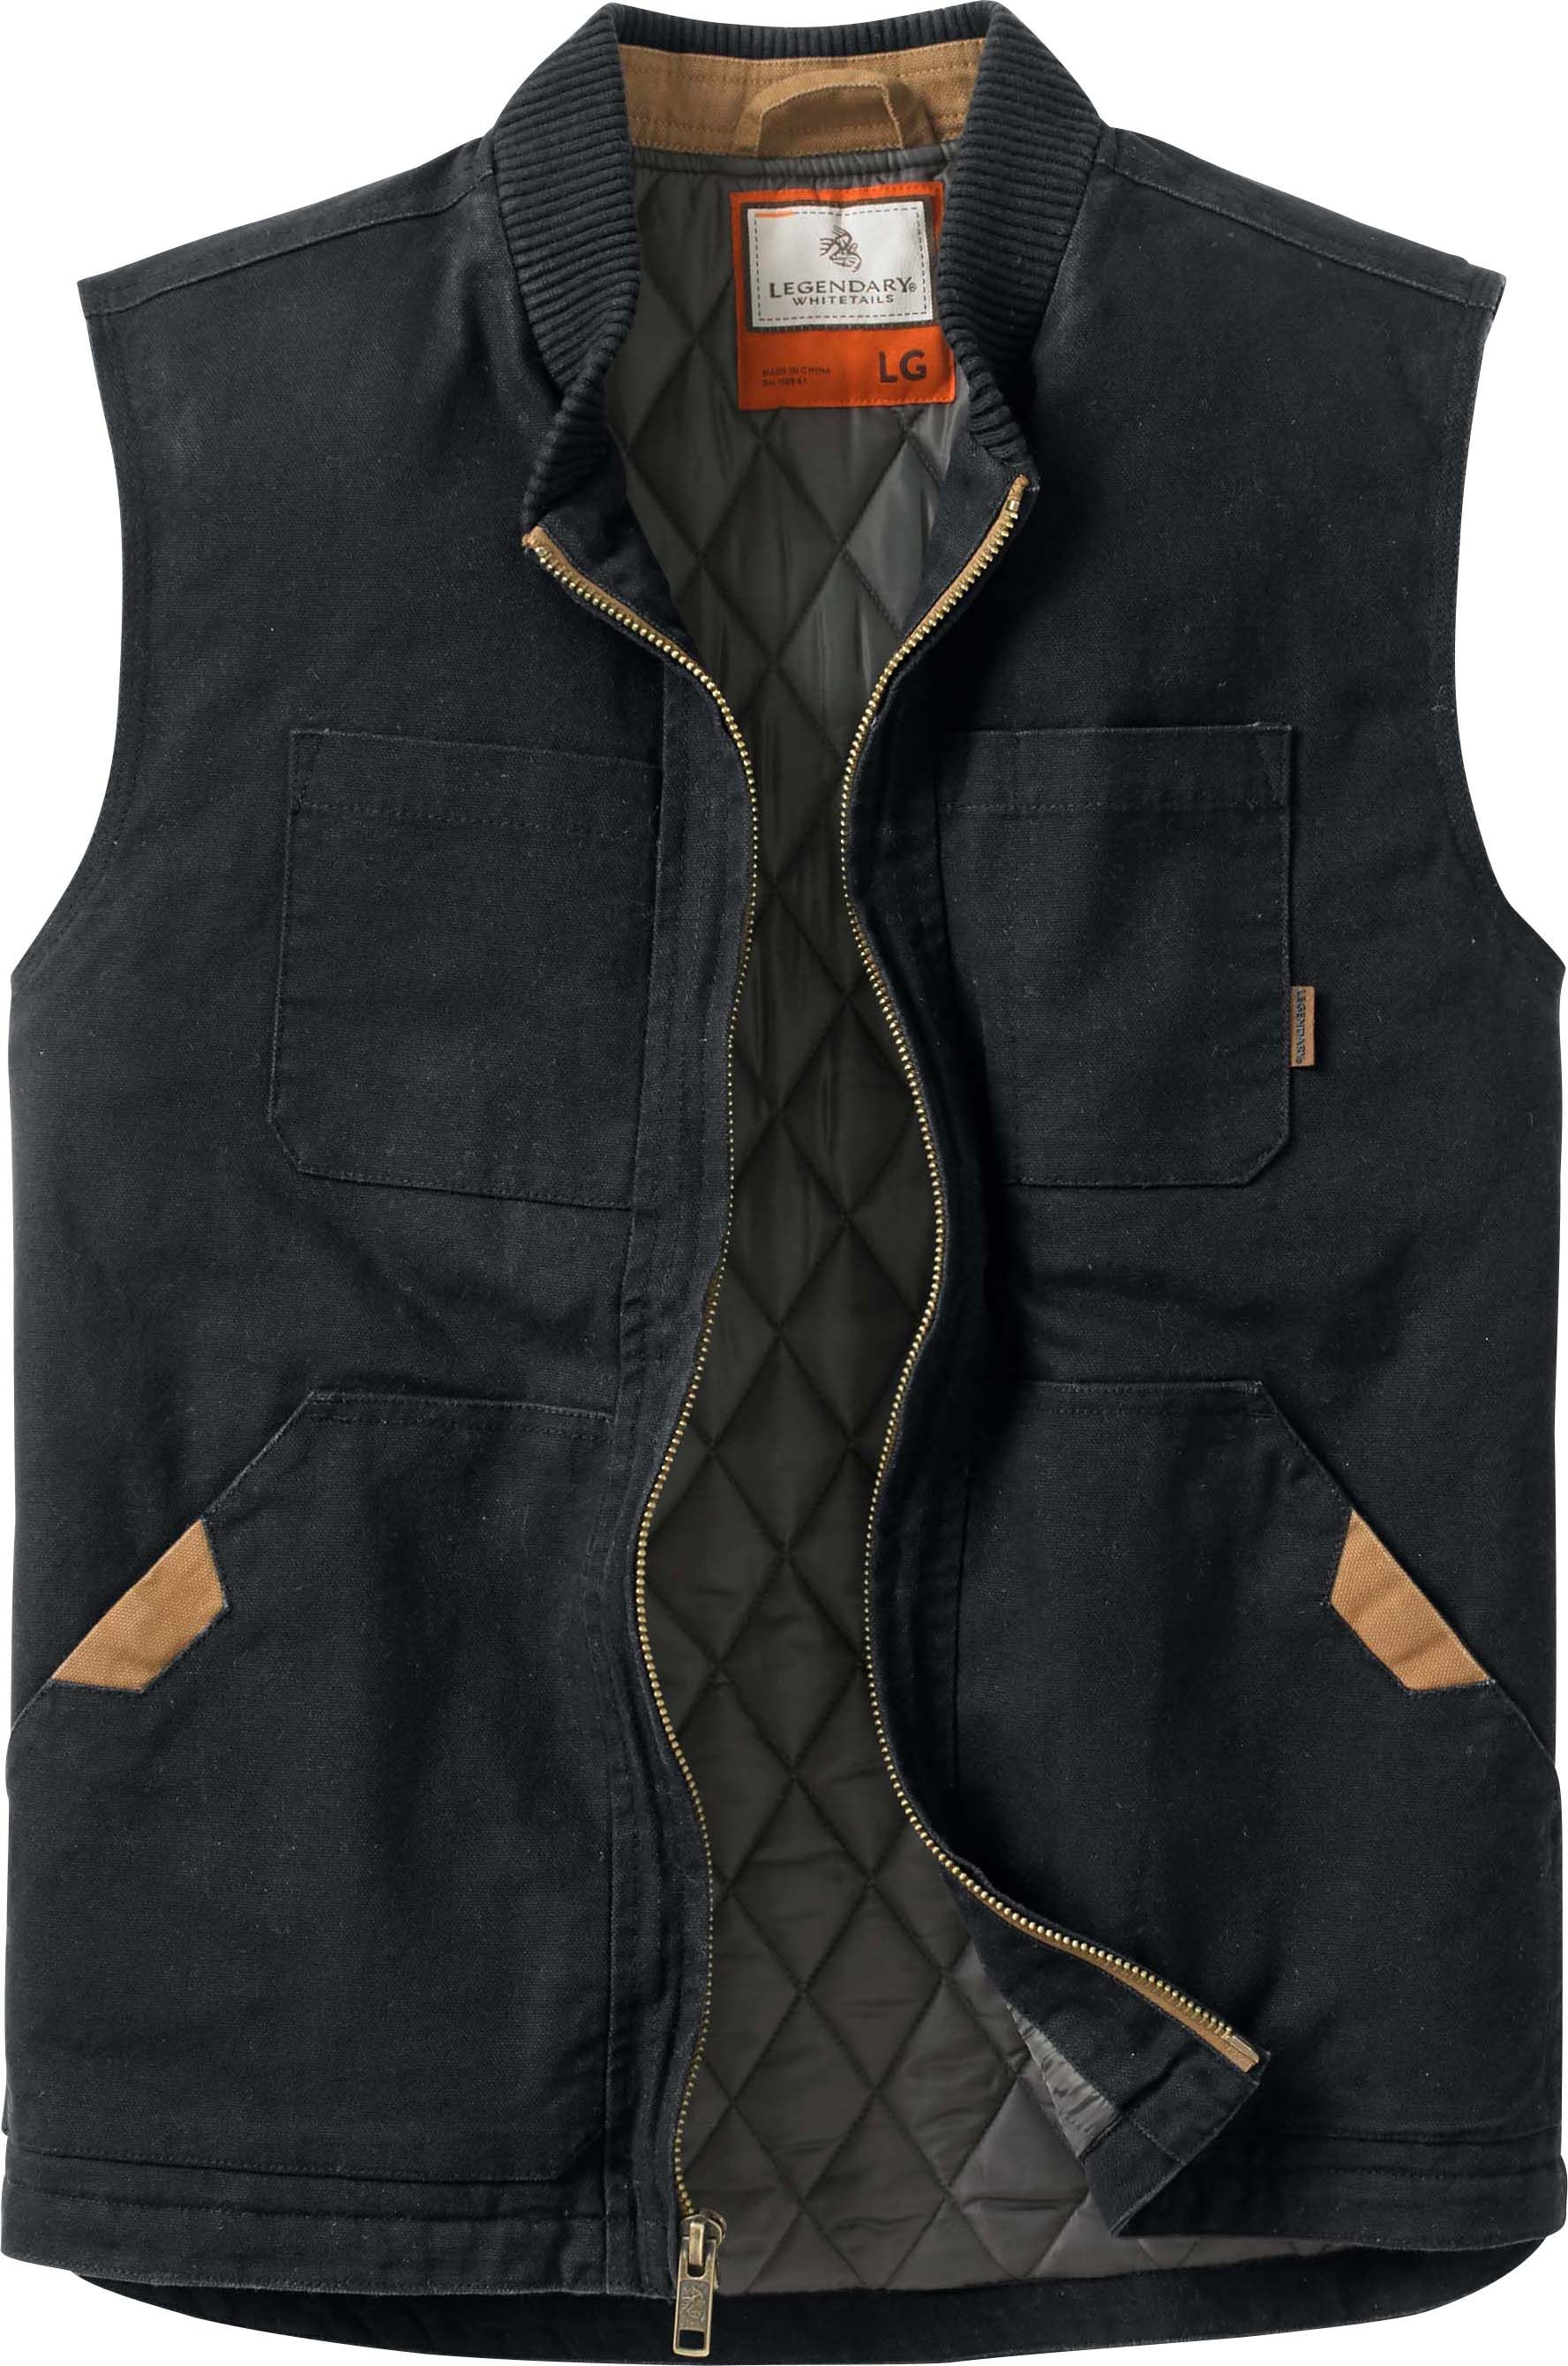 24 Best Men S Casual Outfits Vintagetopia: Men's Canvas Cross Trail Vest (With Images)